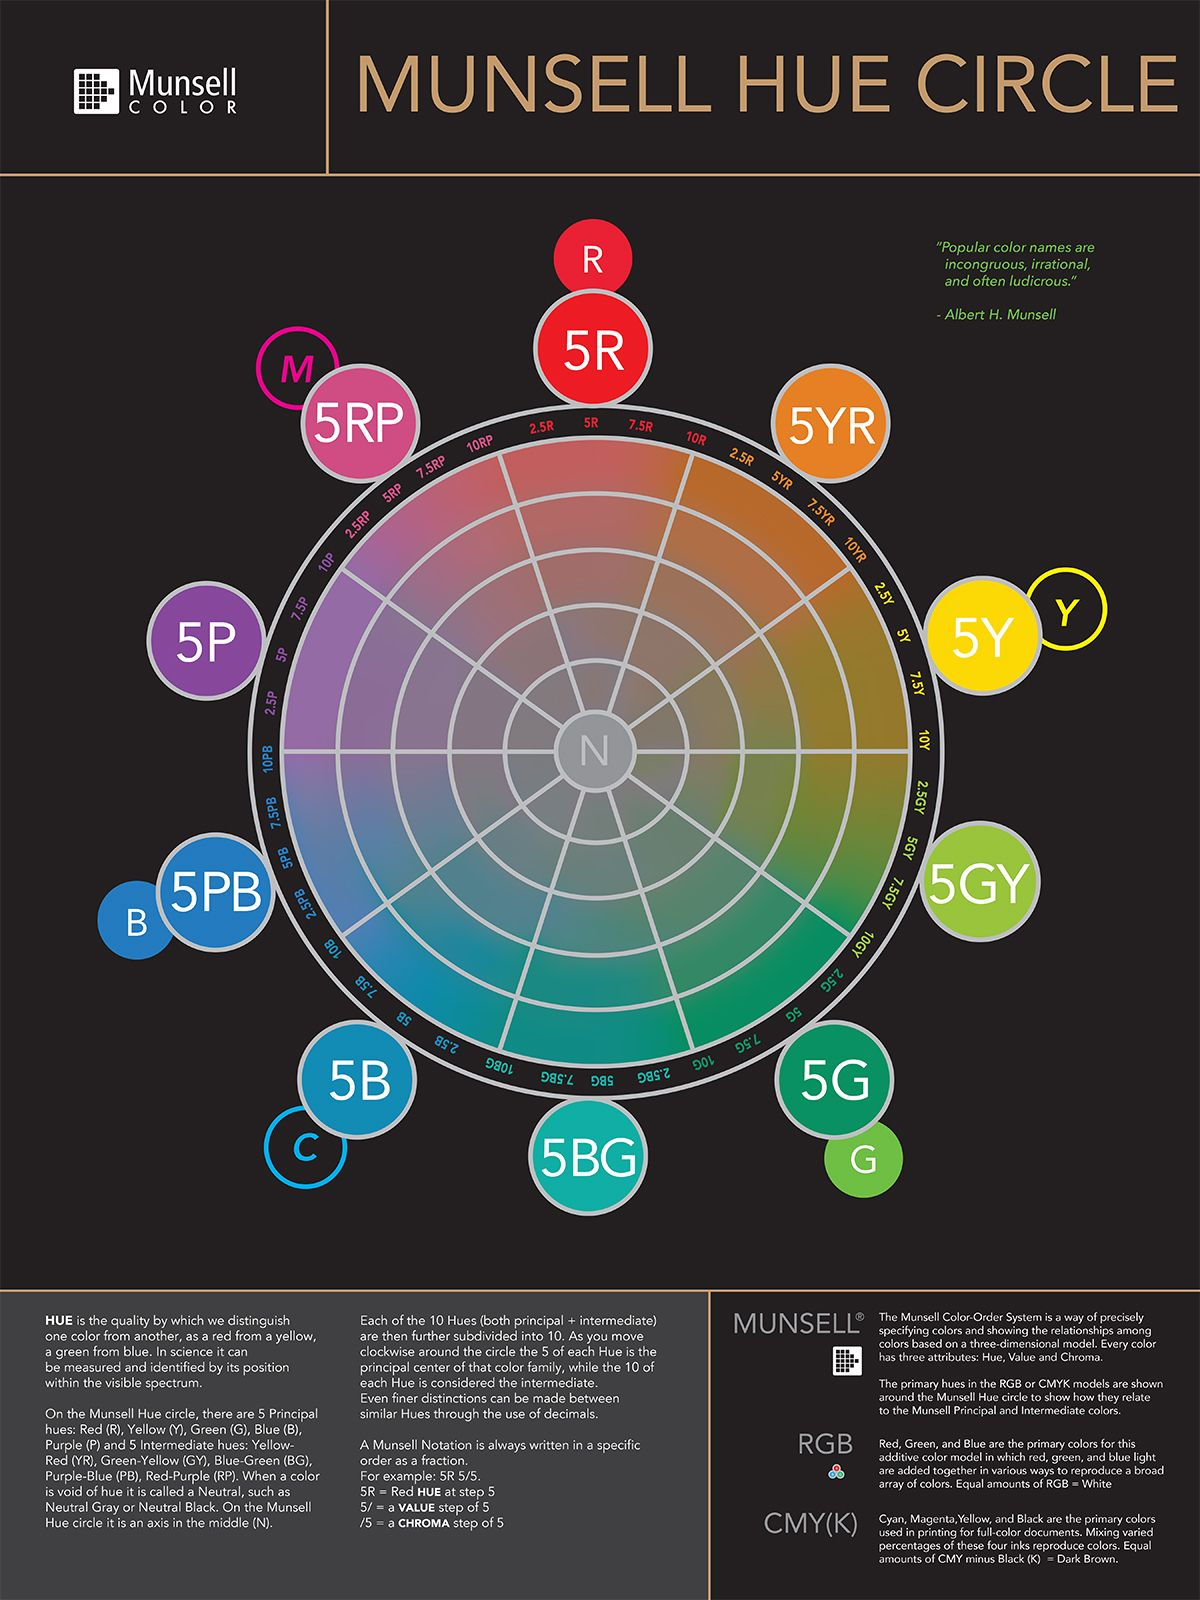 A Poster Featuring The Munsell Hue Circle Diagram Showing